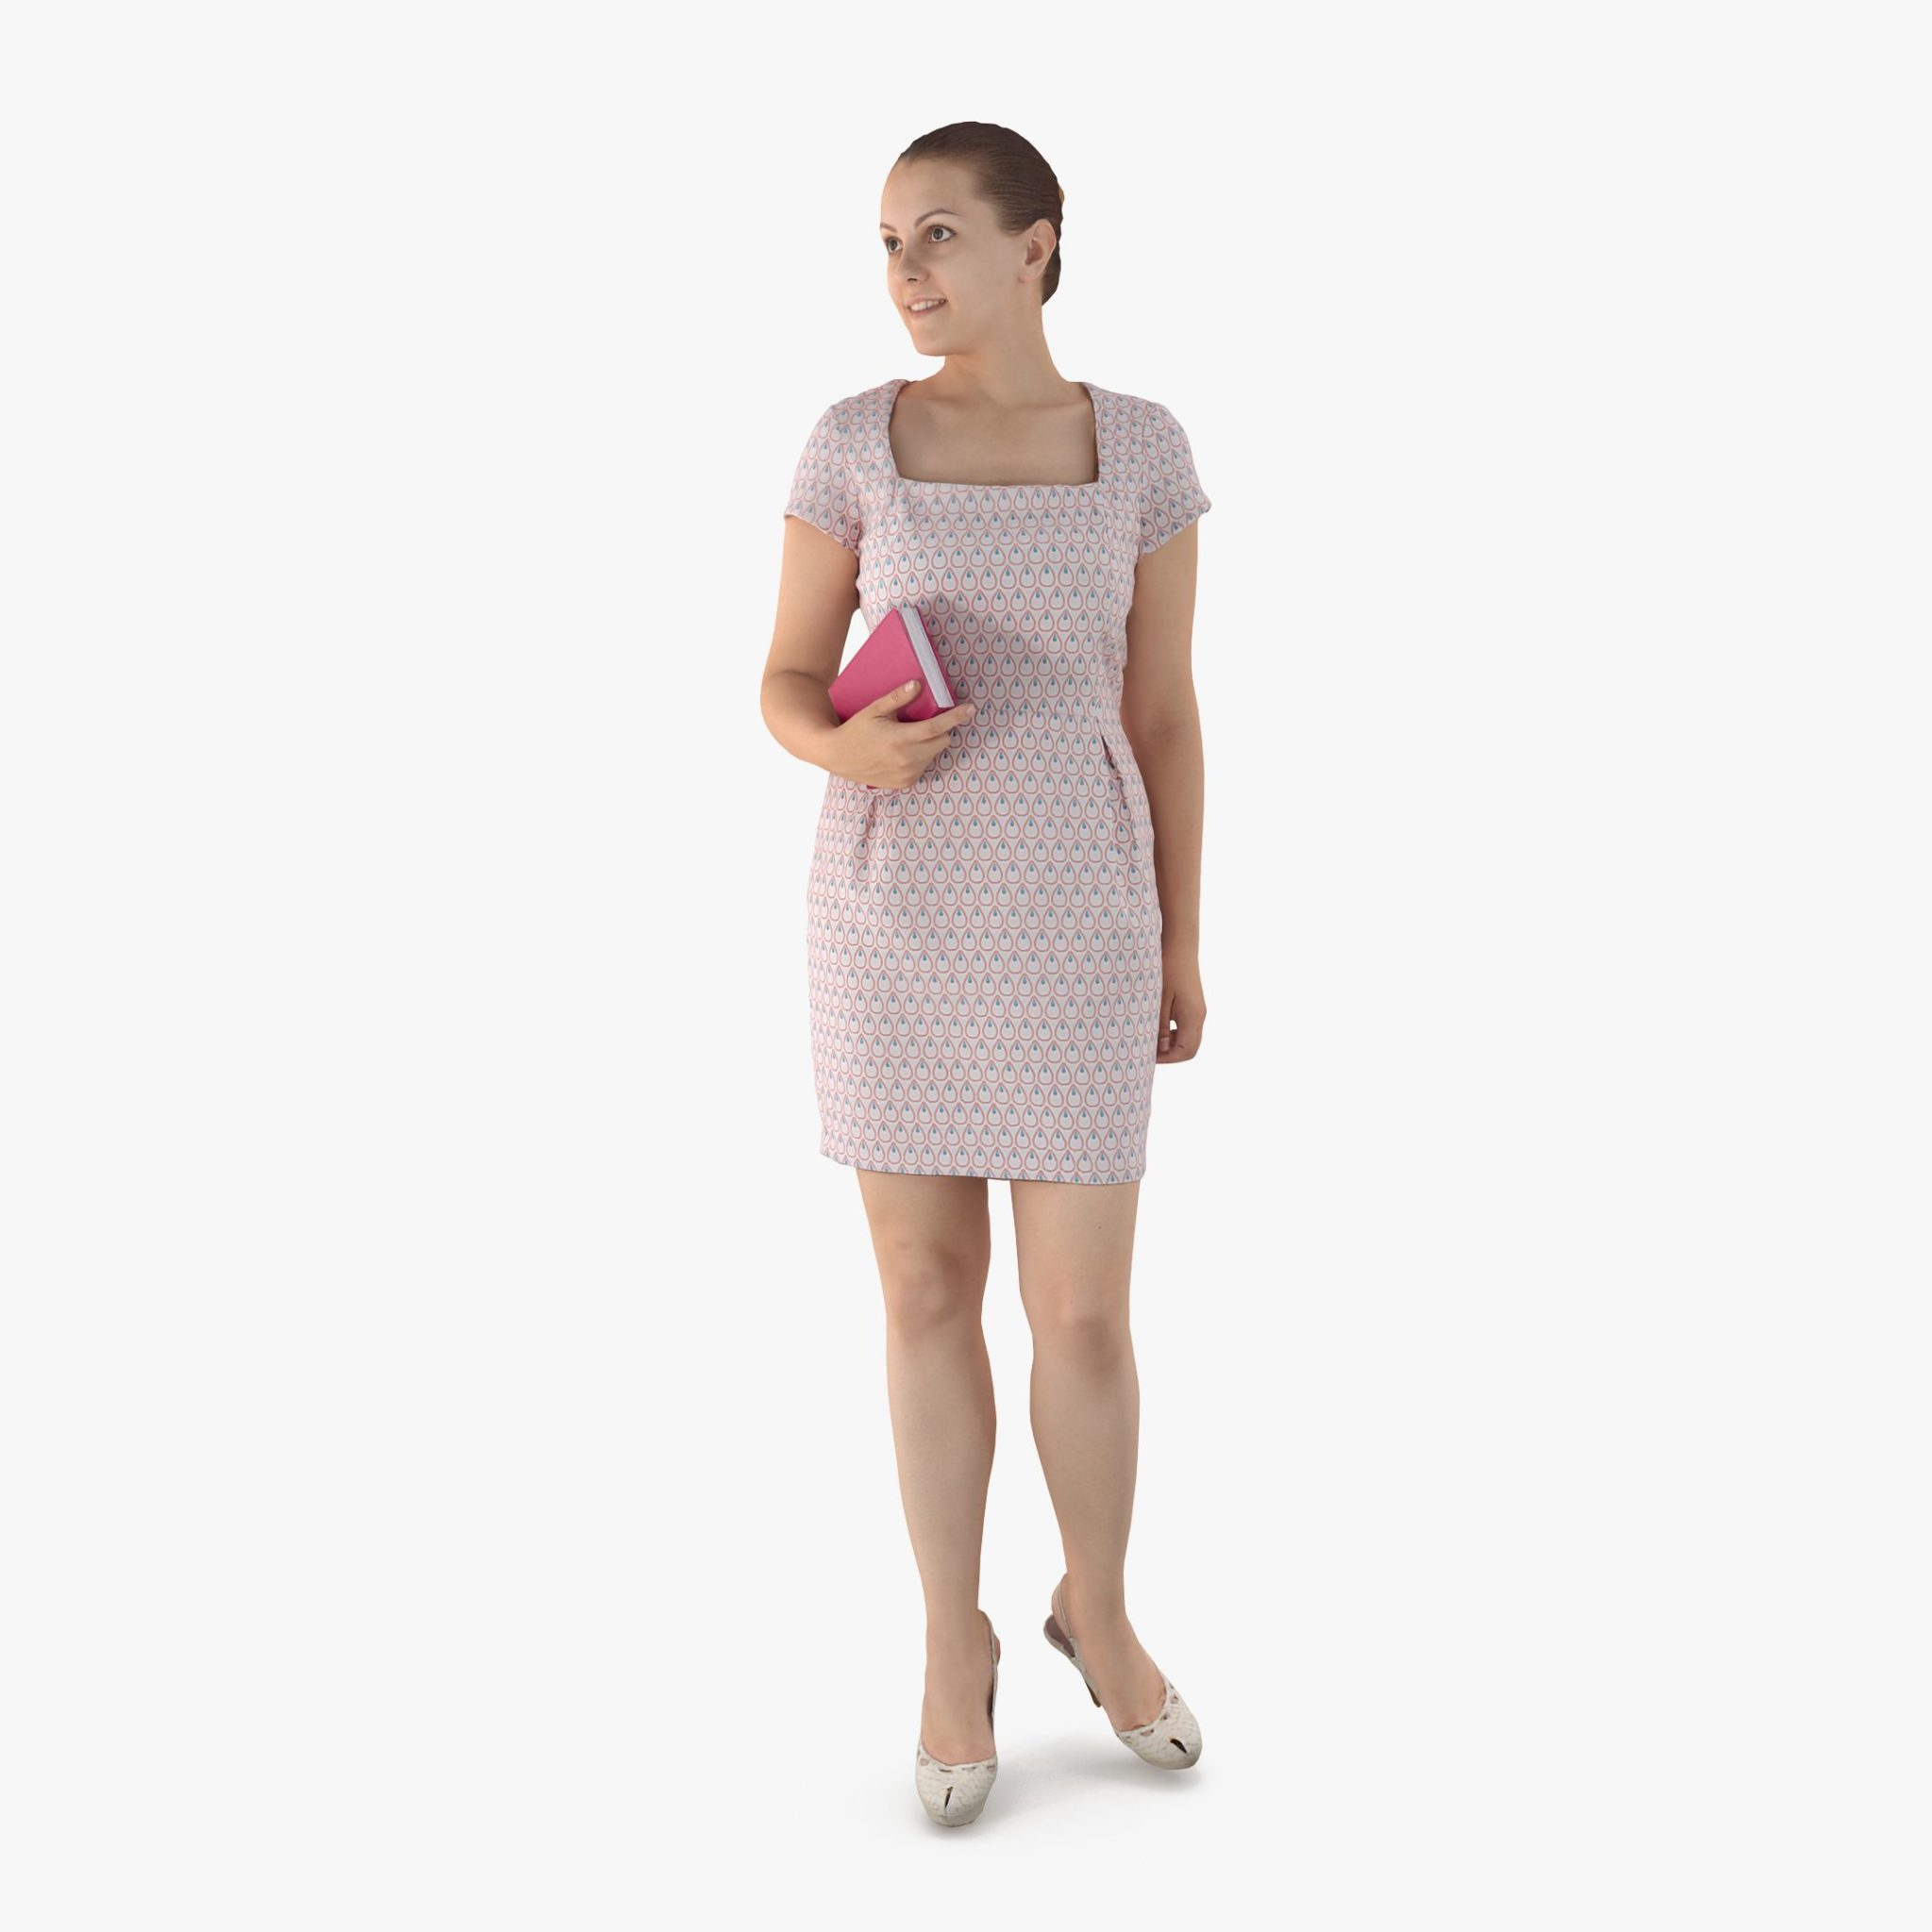 Lady with Book 3D Model   3DTree Scanning Studio